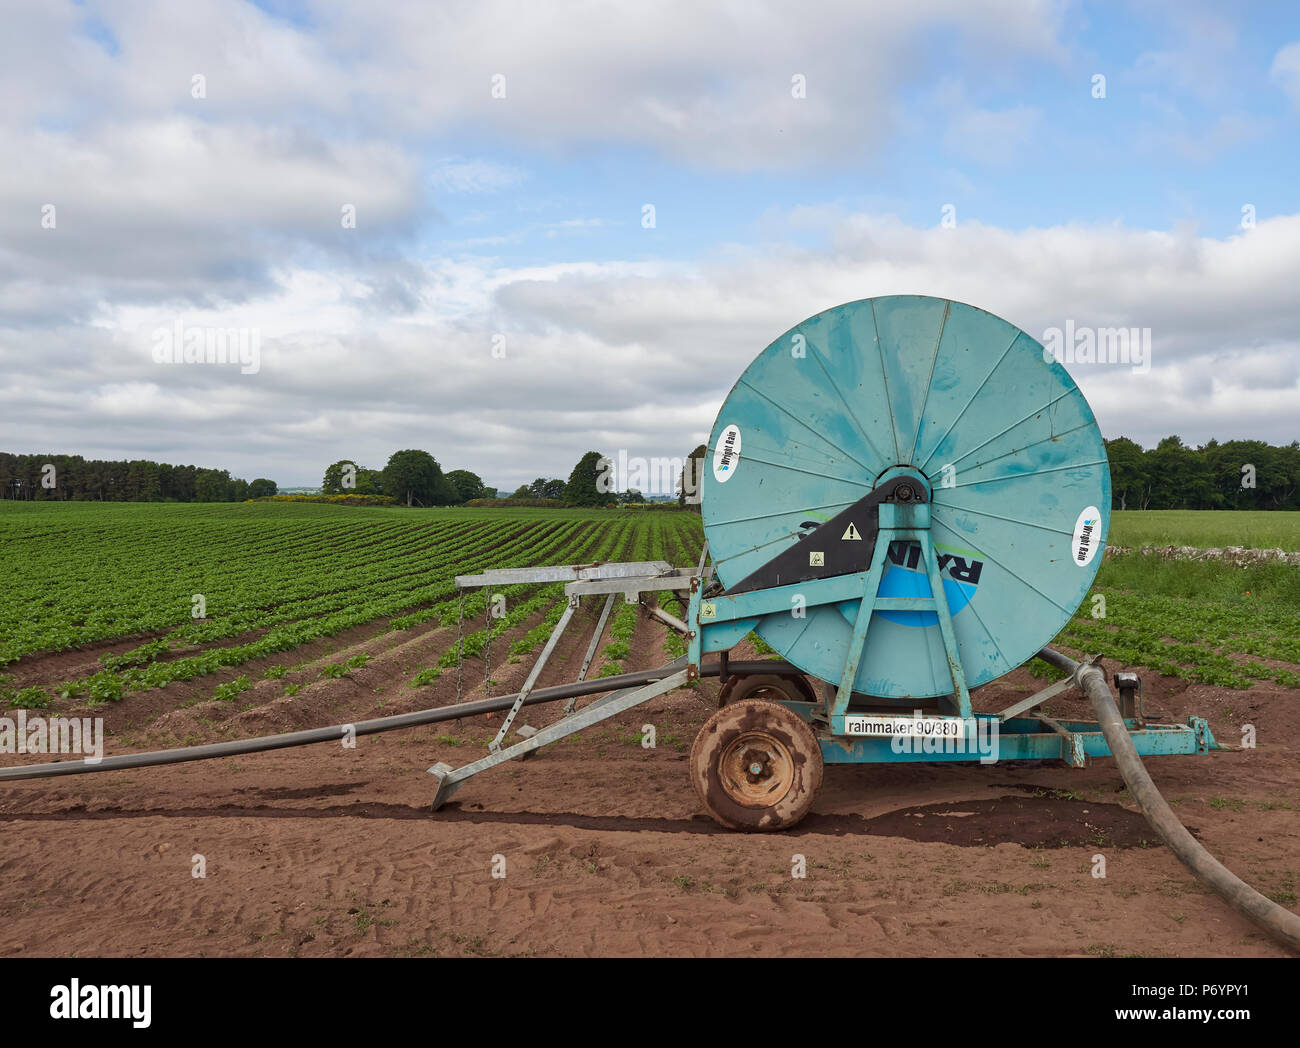 Side on view of a Wright Rainmaker Water Cannon for Agricultural use in the dry conditions being experienced on Angus in Scotland. - Stock Image